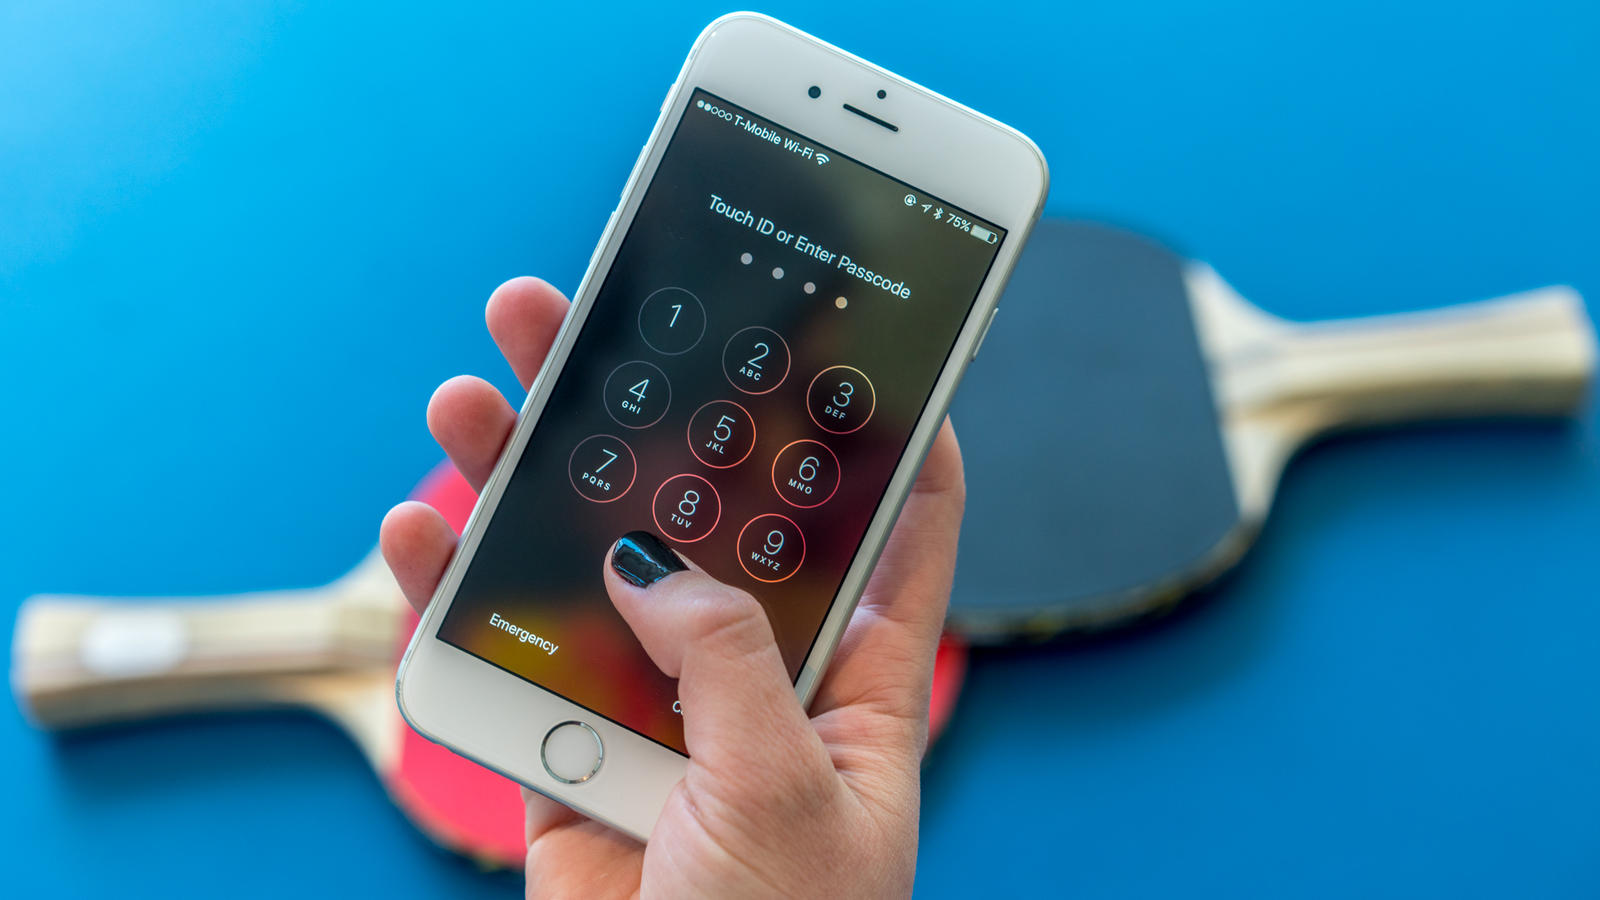 Doubt If Your iPhone is Hacked Secretly? A New App to Clear Your Doubt!